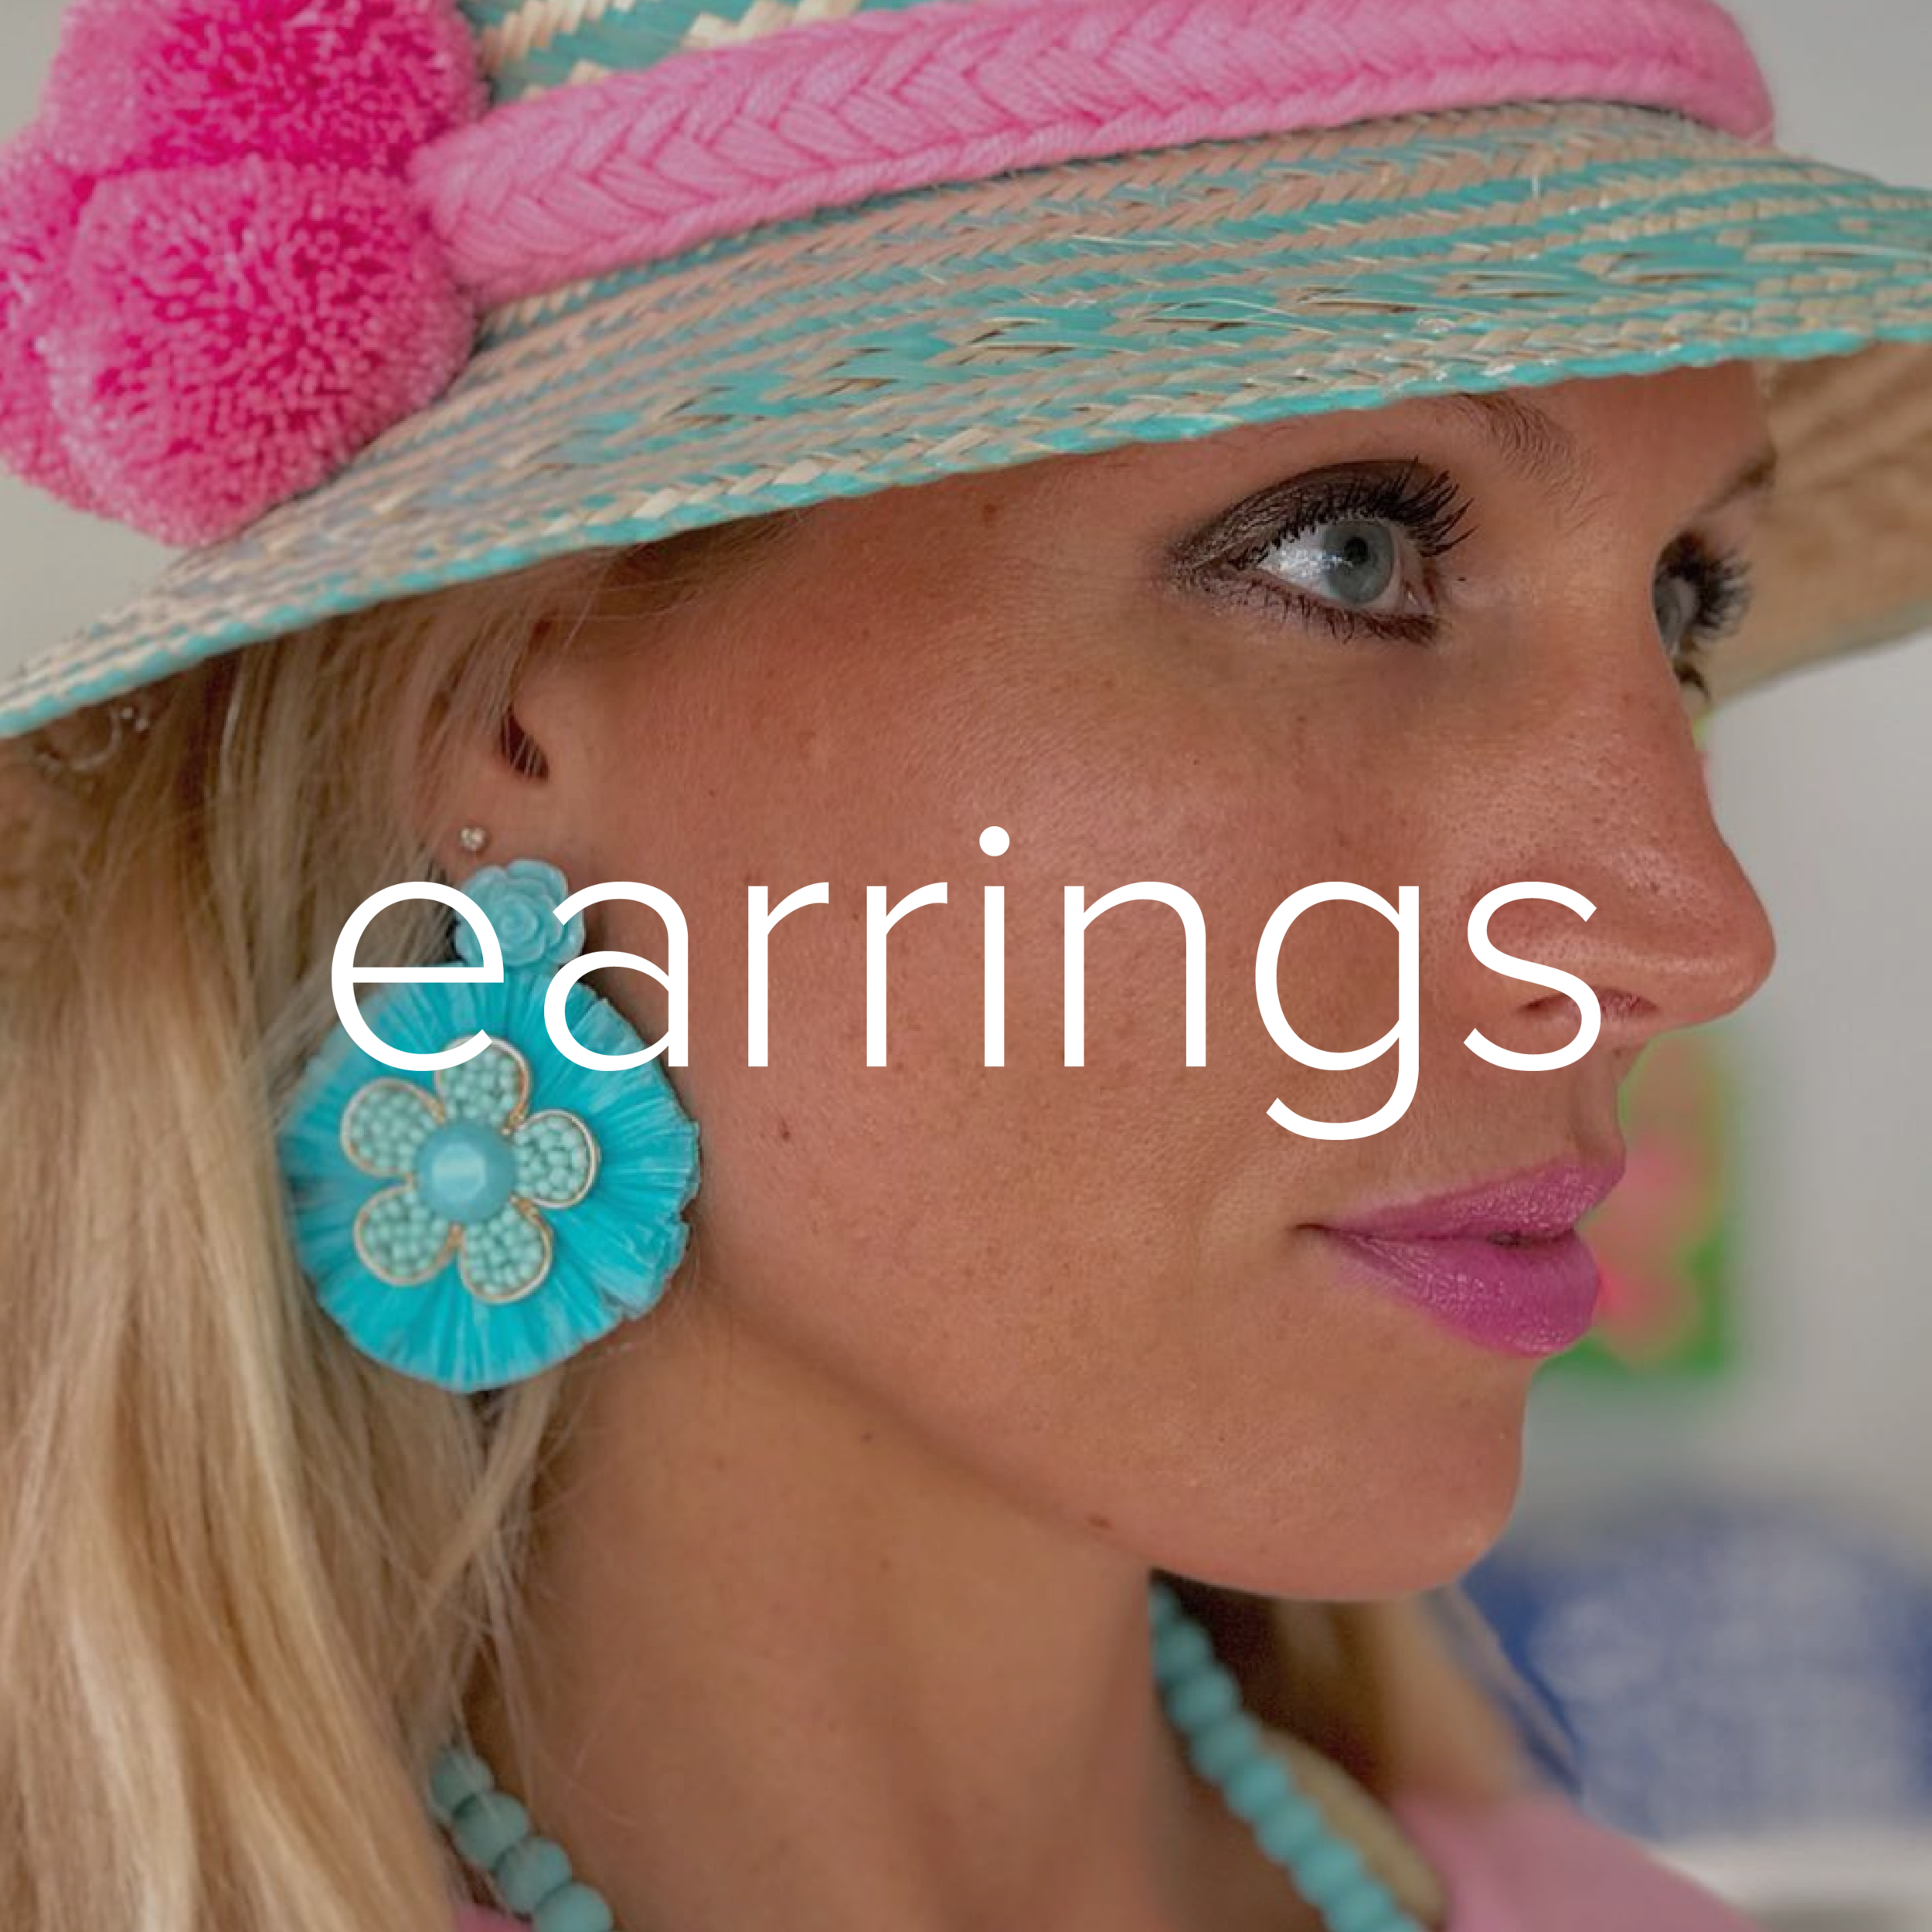 earrings-01.png